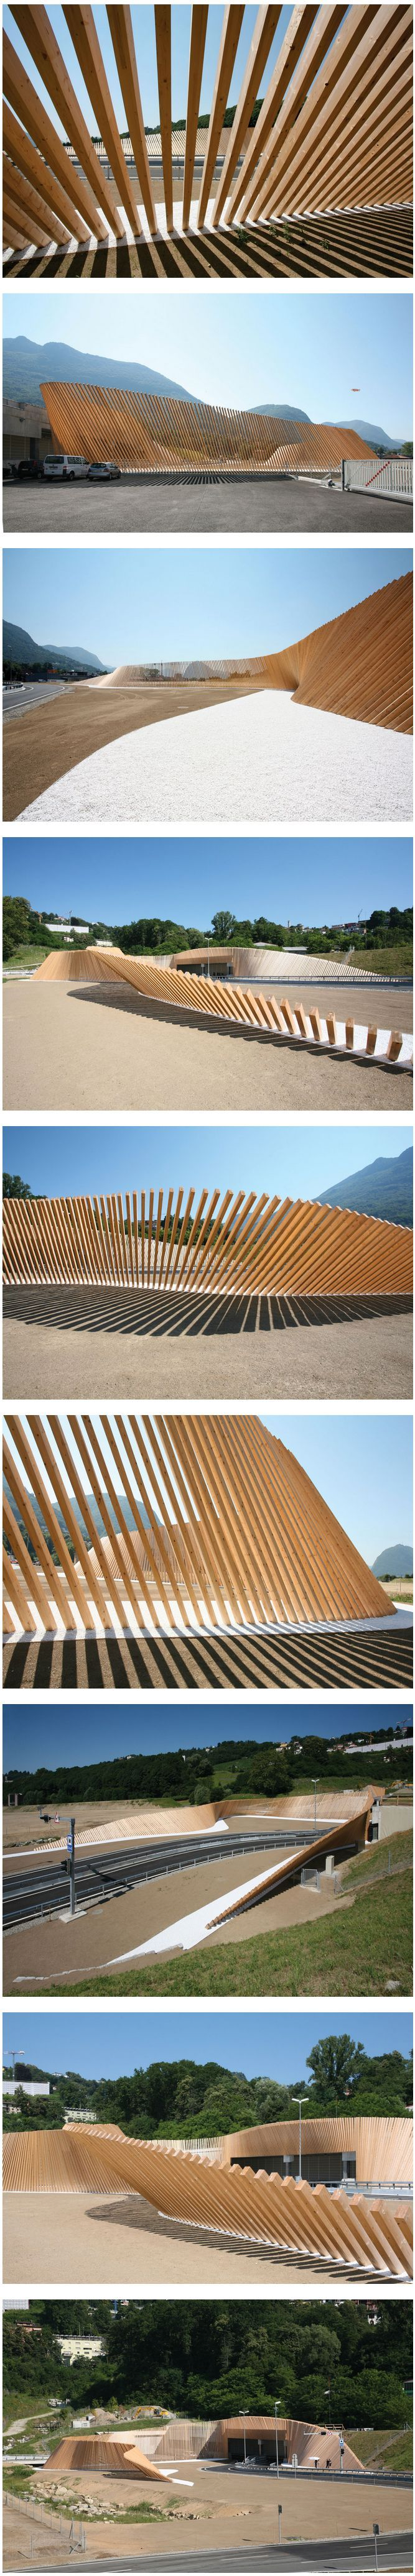 A large sinuous screen of wood designed by italian practice Cino Zucchi Architects defines a playful visual space at the entrance of the Vedeggio-Cassarate tunnel.